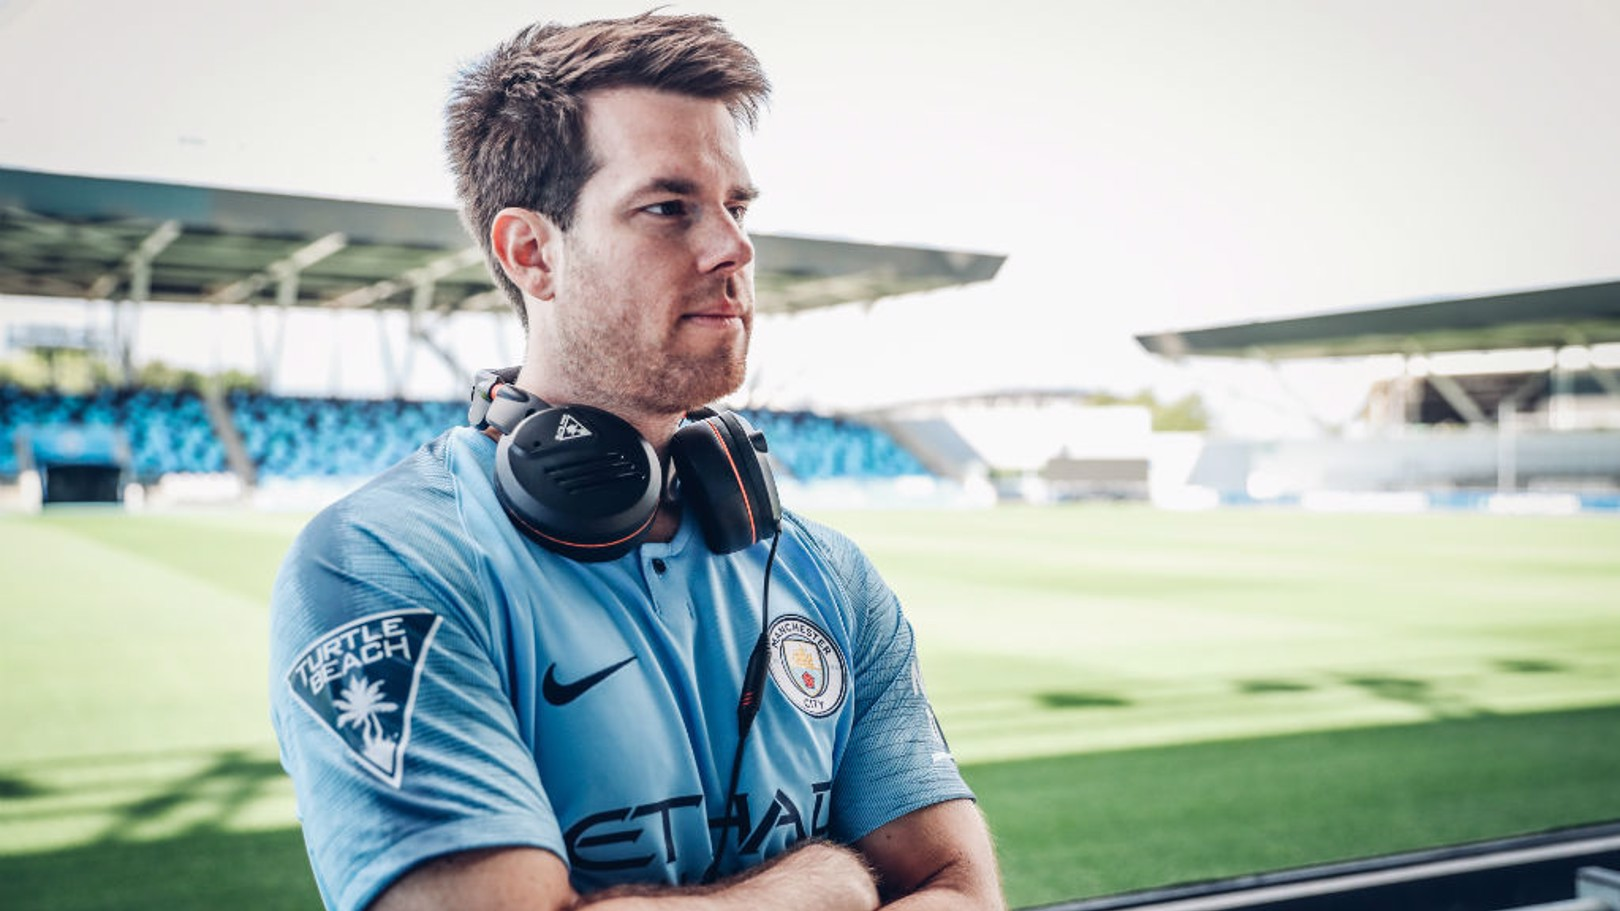 DONE DEAL: Turtle Beach are now the official eSports & Gaming Headset Partner of Manchester City!